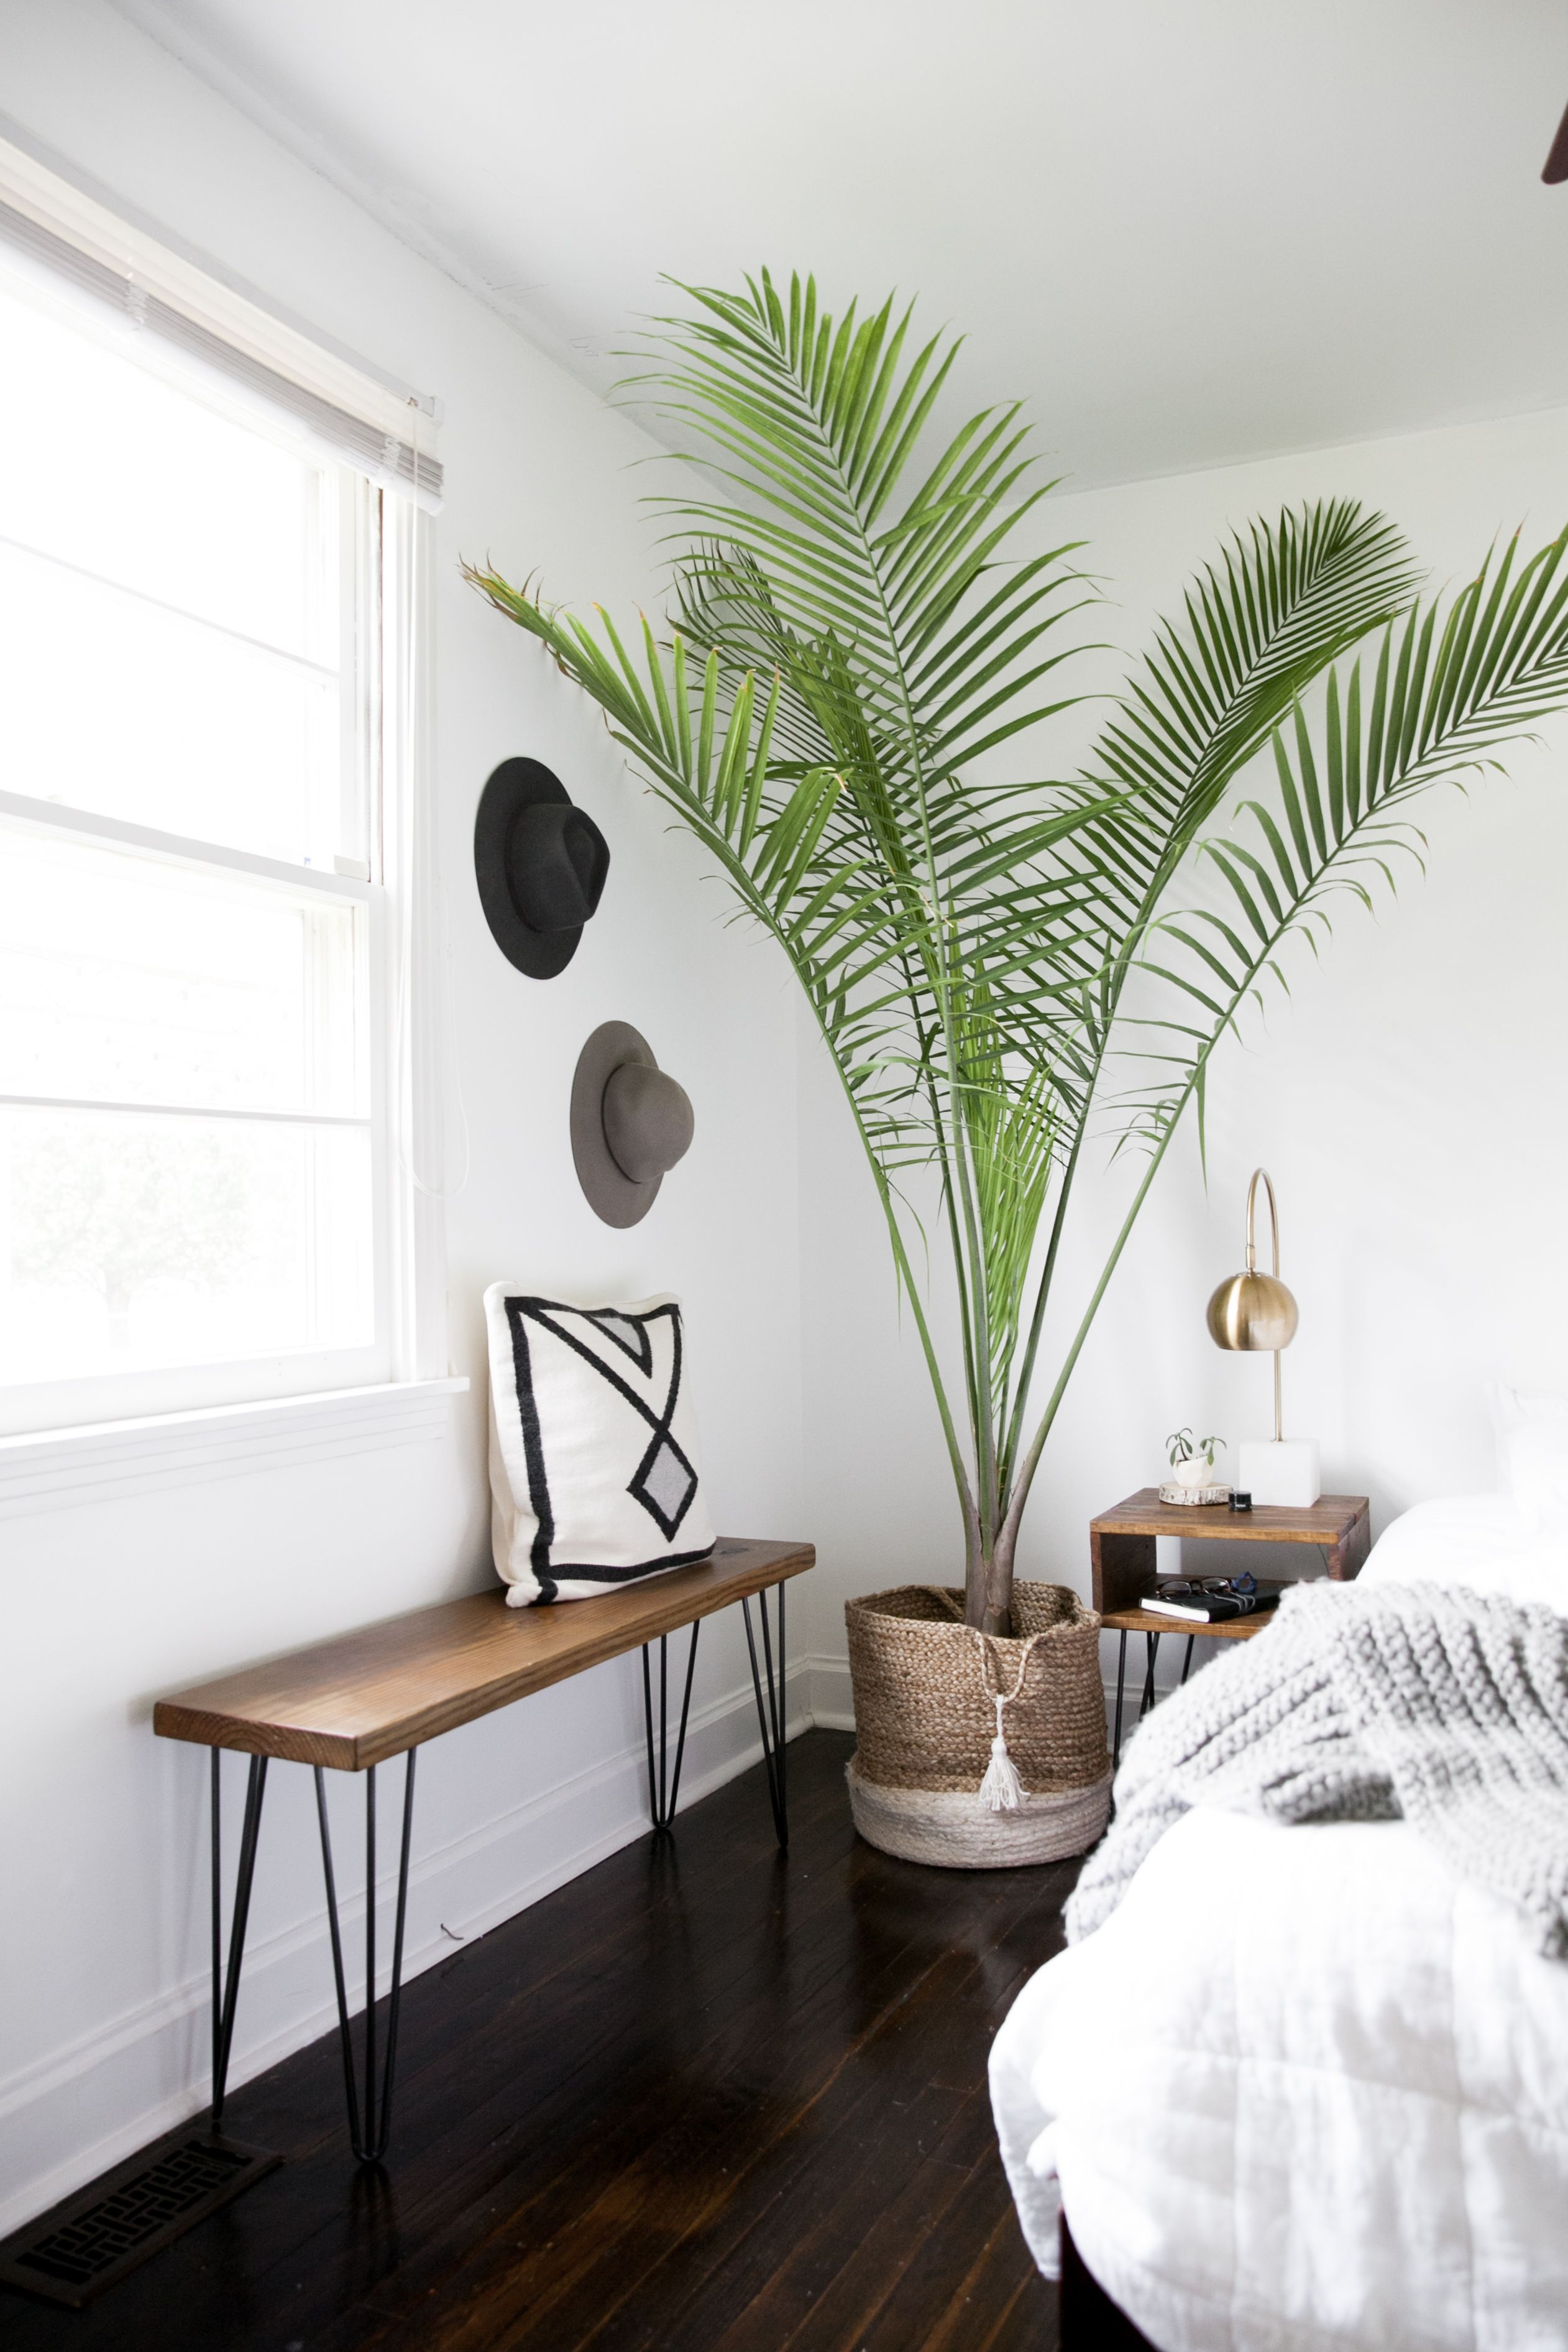 Merveilleux Sam And Lisau0027s Bright Bedroom Corner Feels Tropical Thanks To This Tall  Plant.